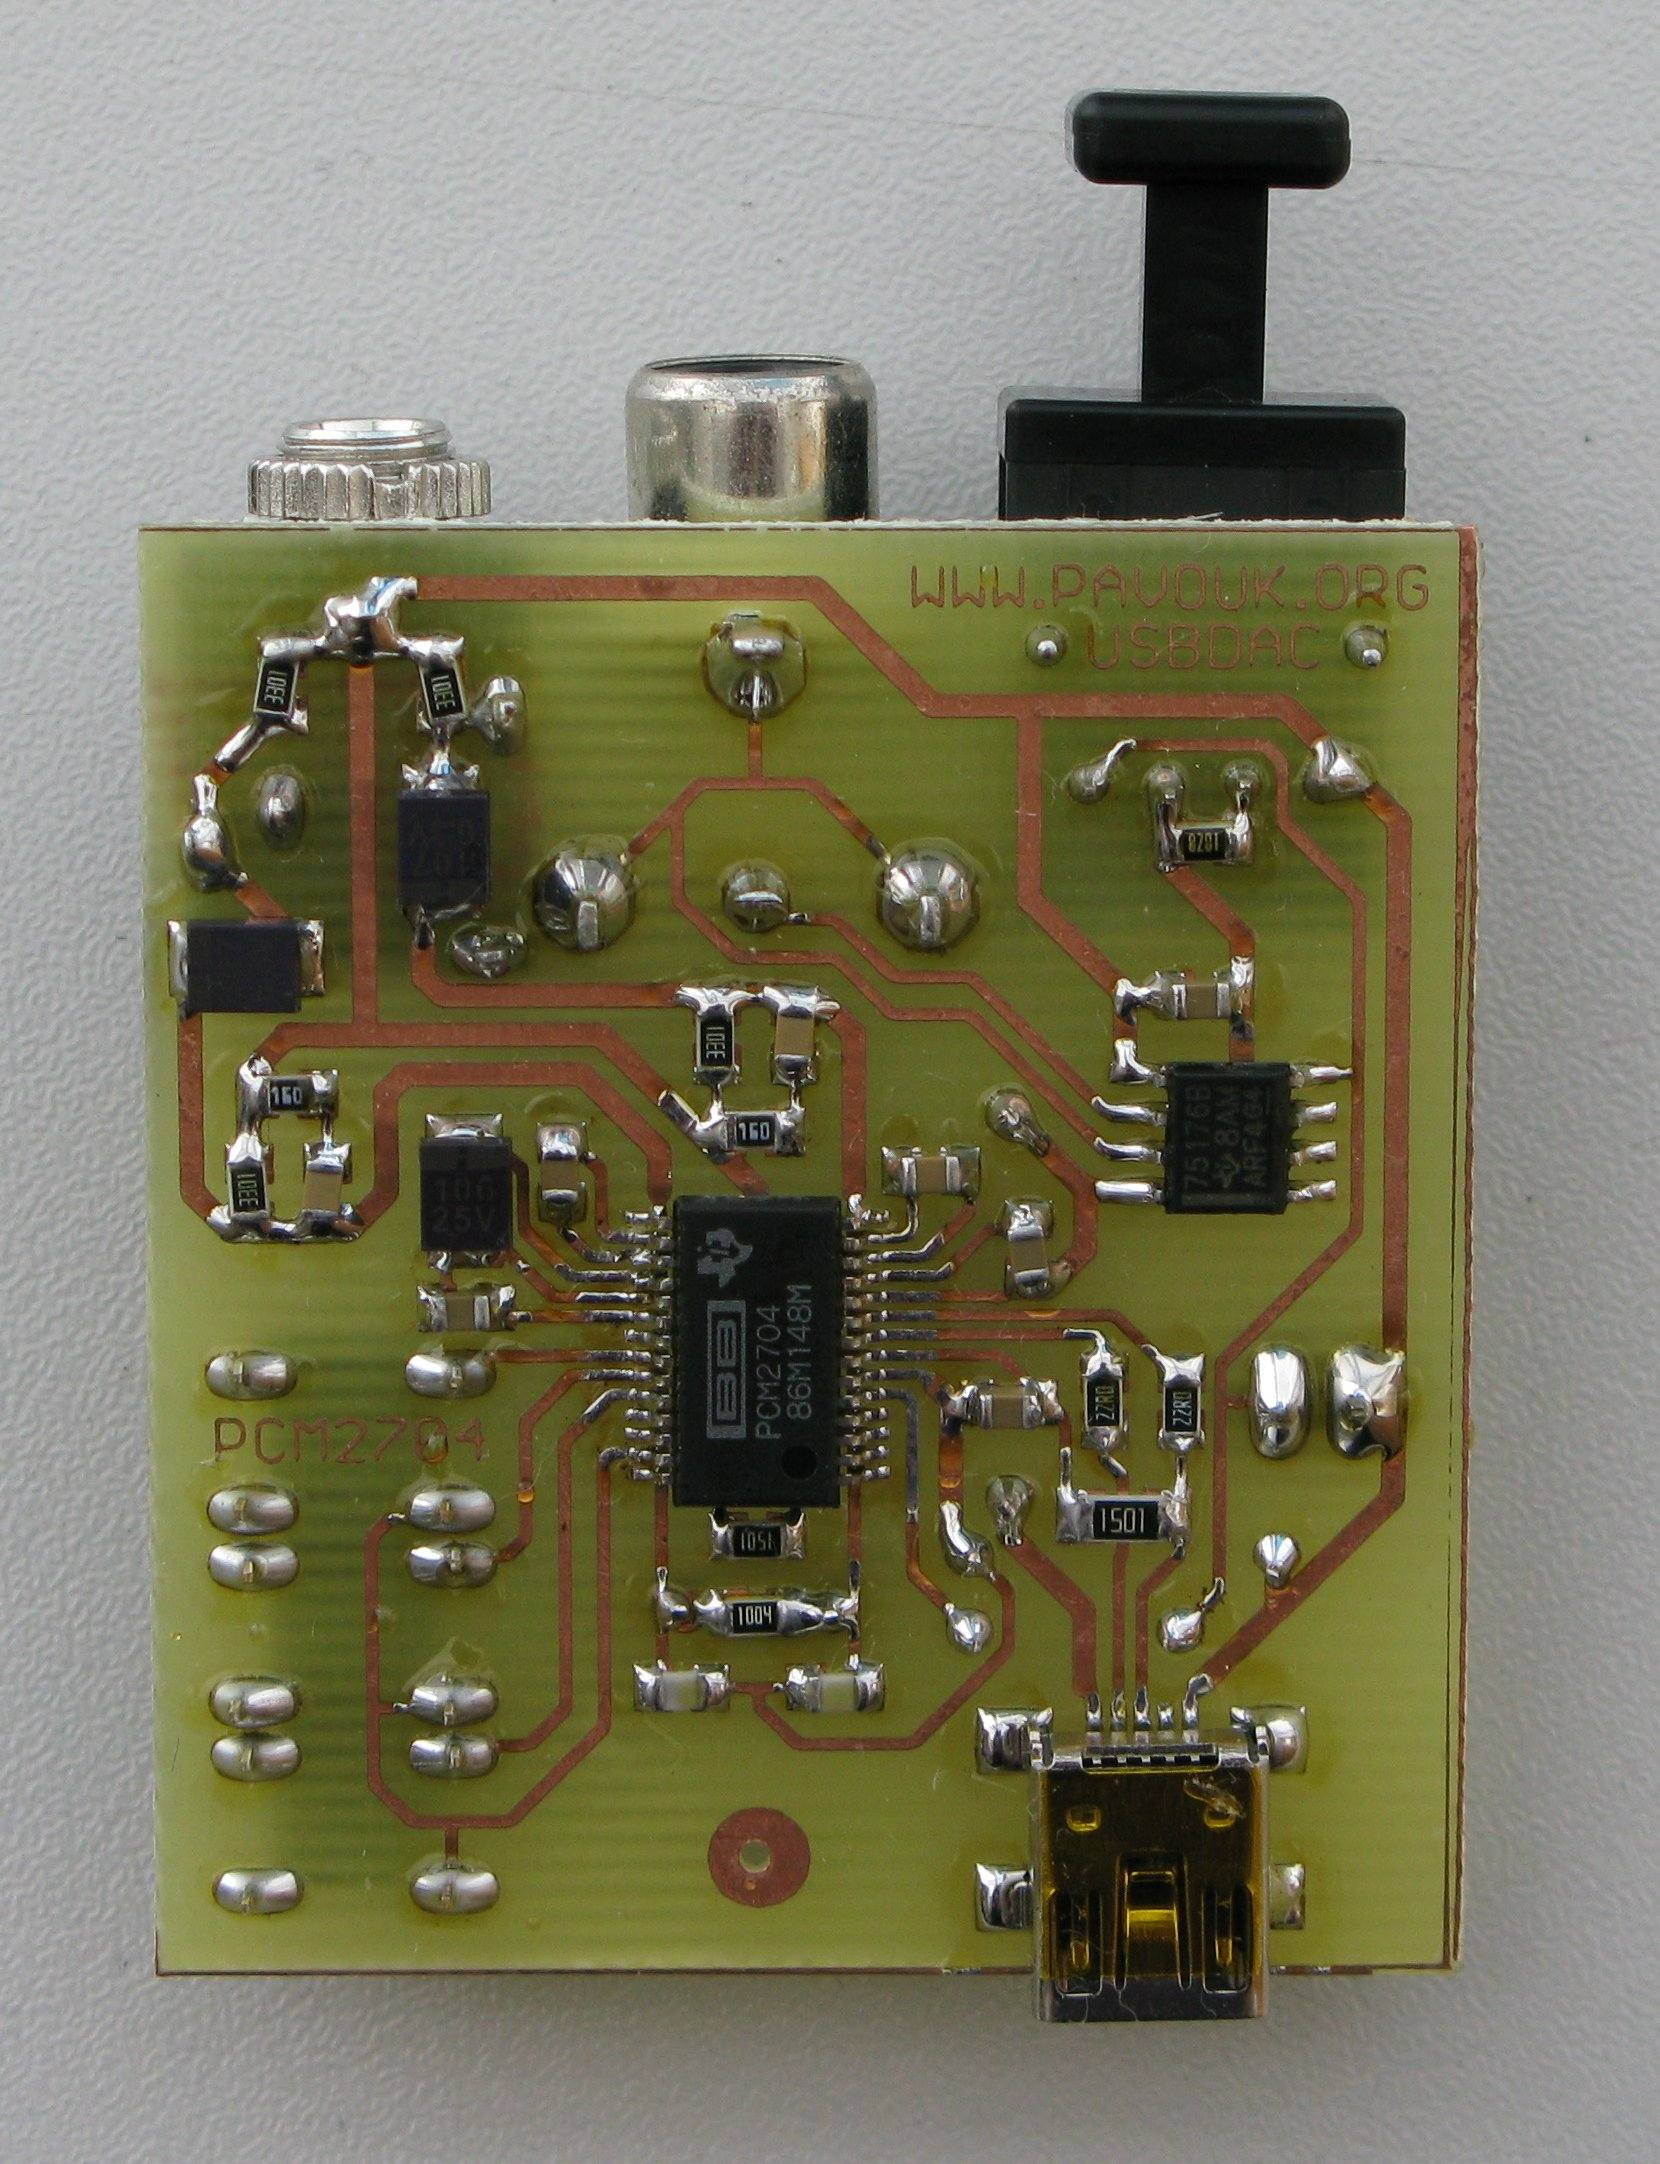 USB Audio DAC with PCM2704